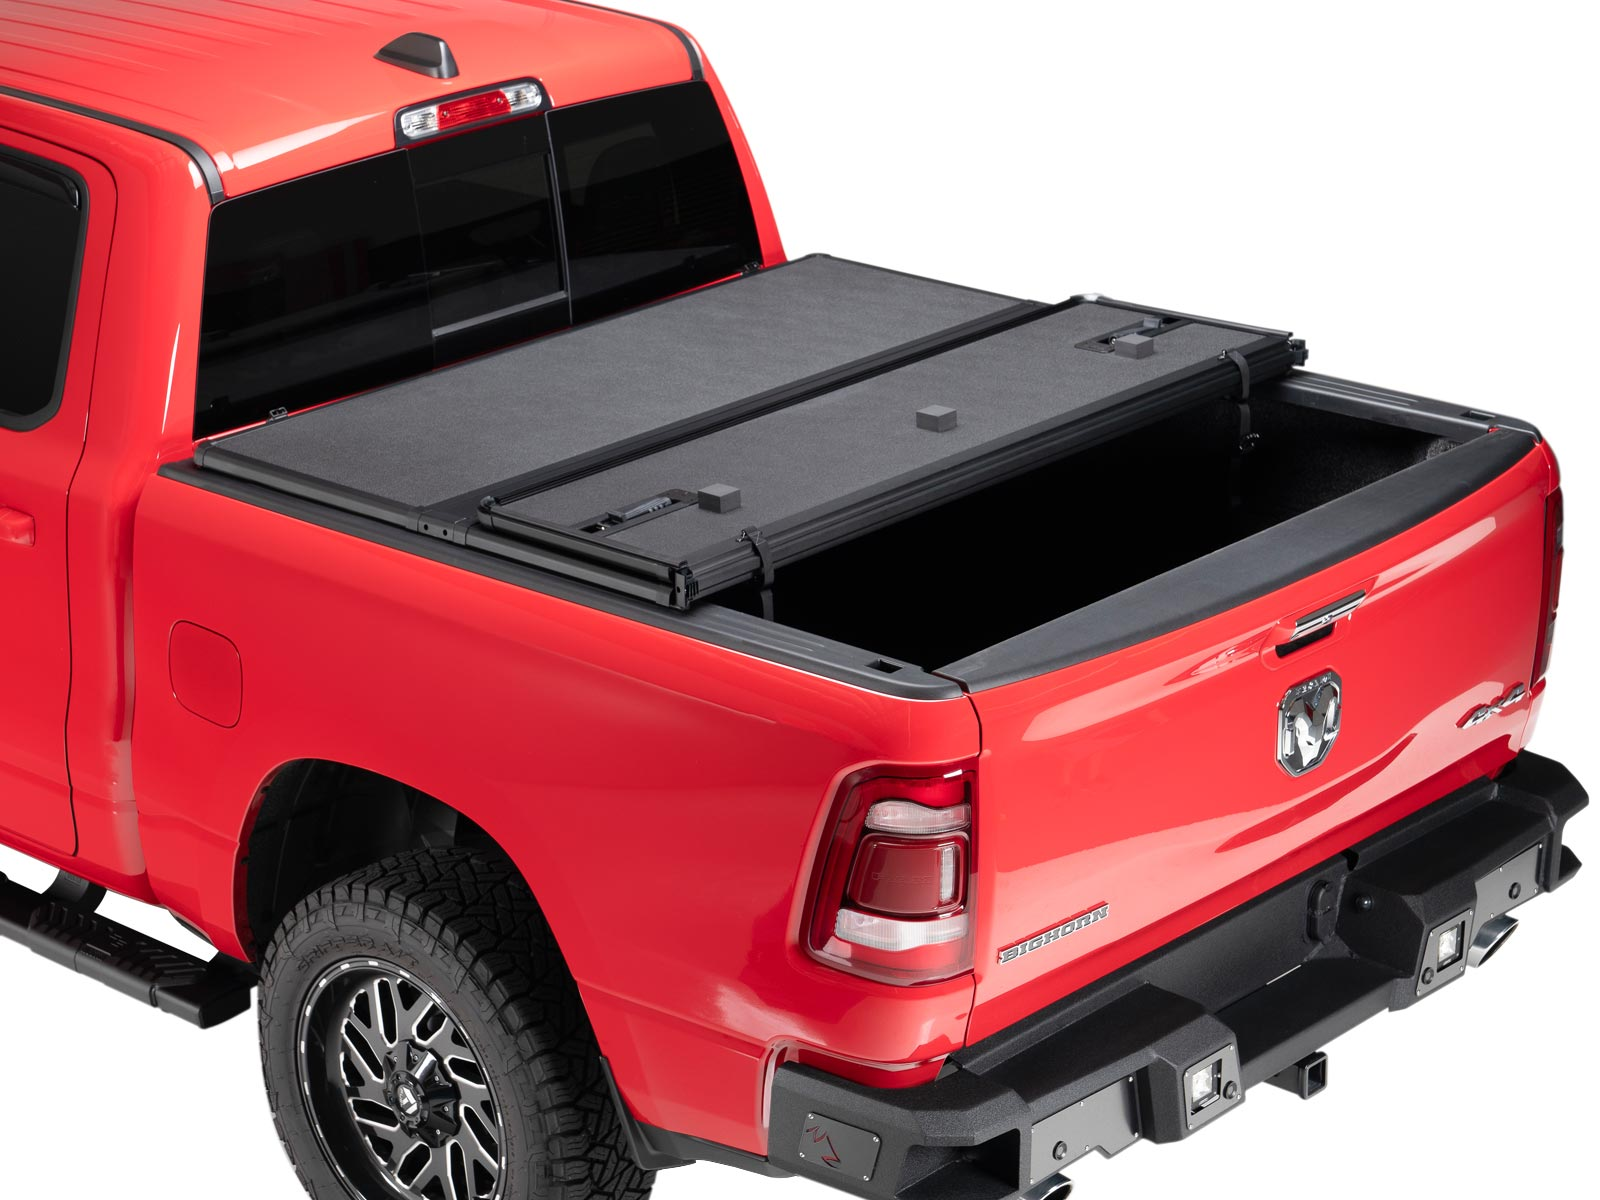 2019 Ford F250 Accessories Gator Covers